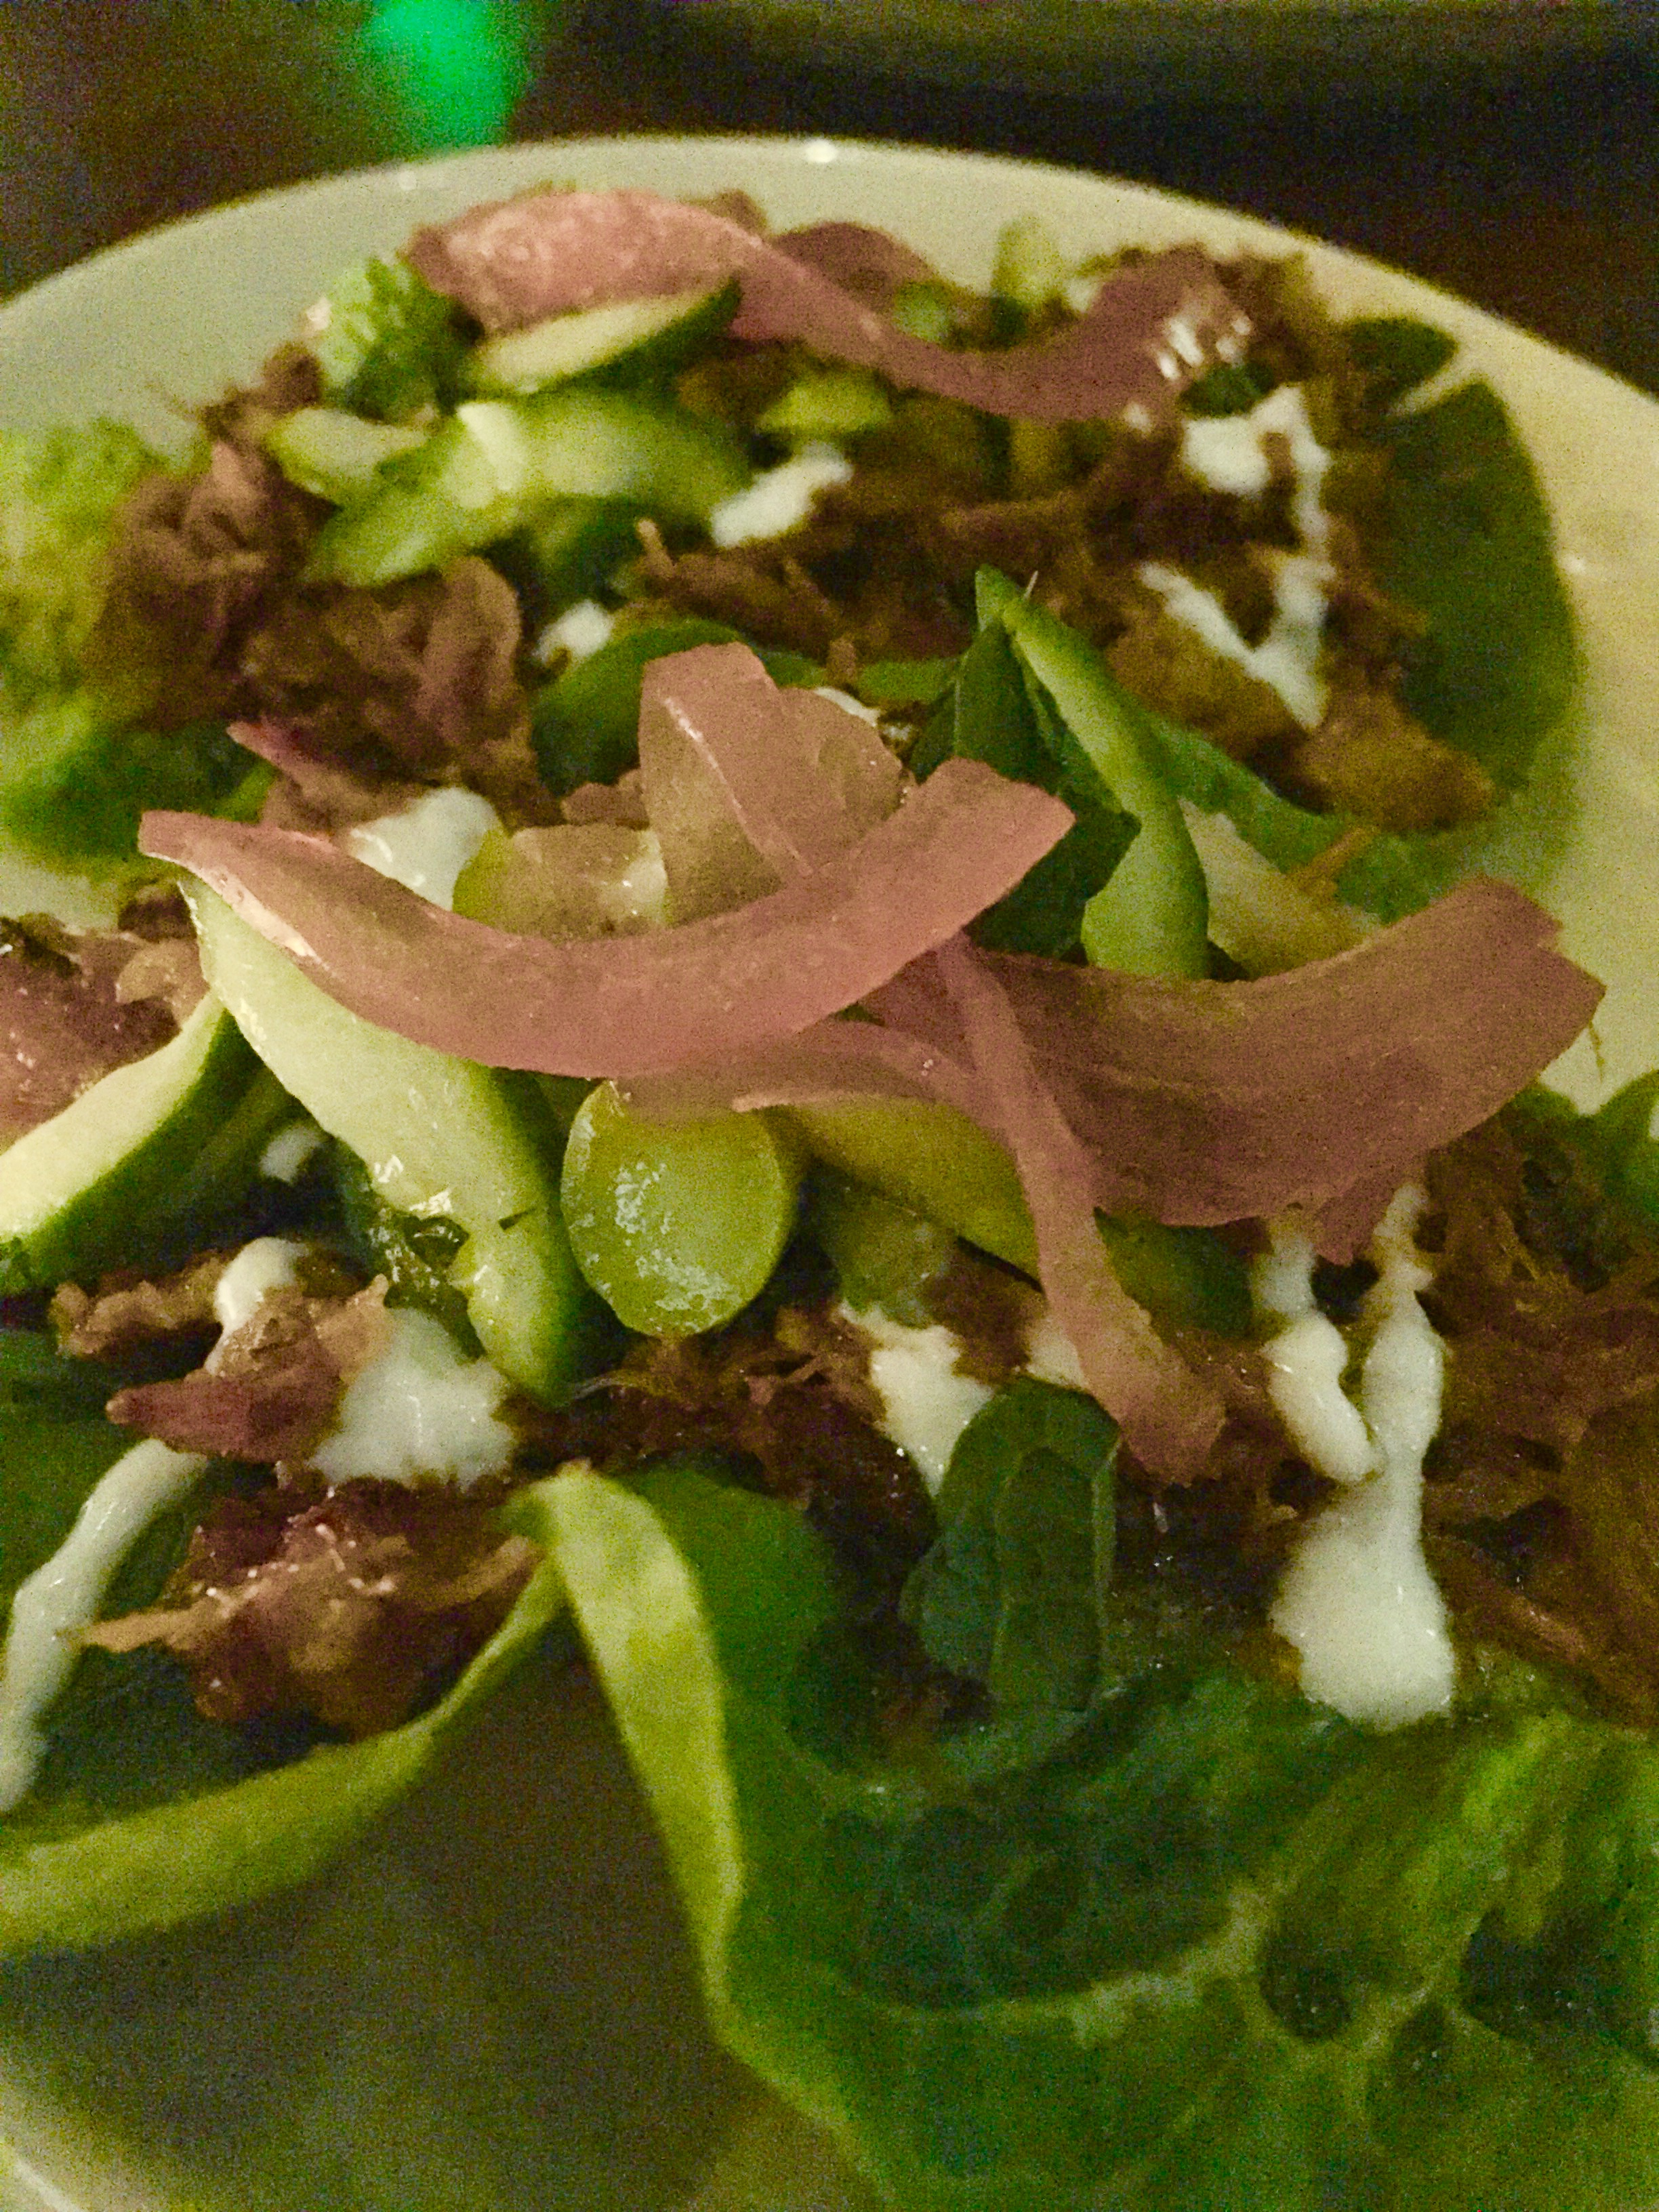 Lamb lettuce wrap nightly special.